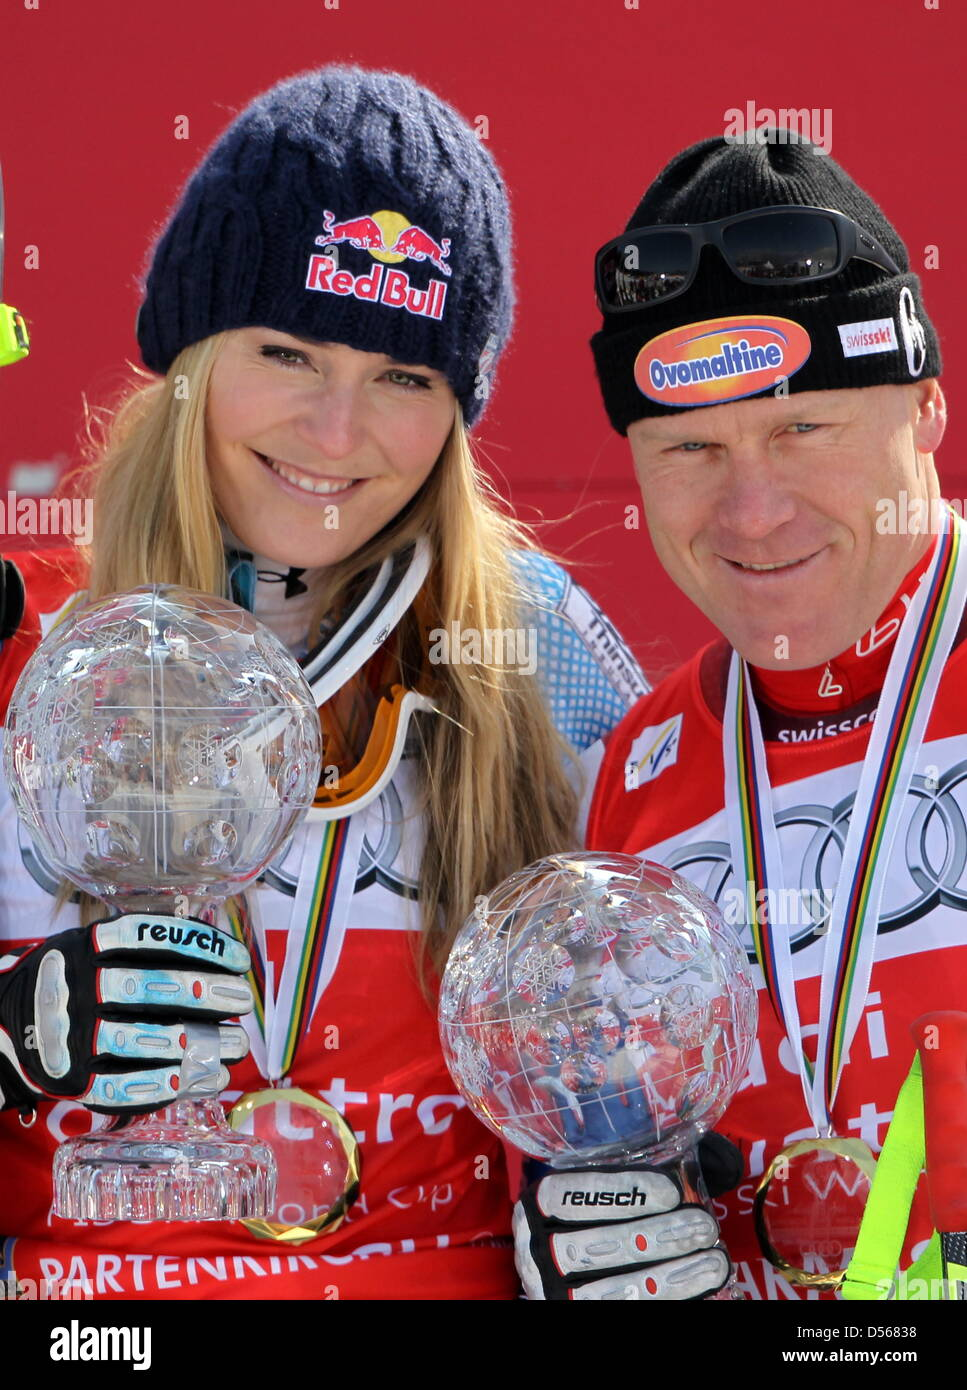 US Lindsey Vonn (L) and Swiss Didier Cuche celebrate with their trophies for their overall downhill victories at - Stock Image